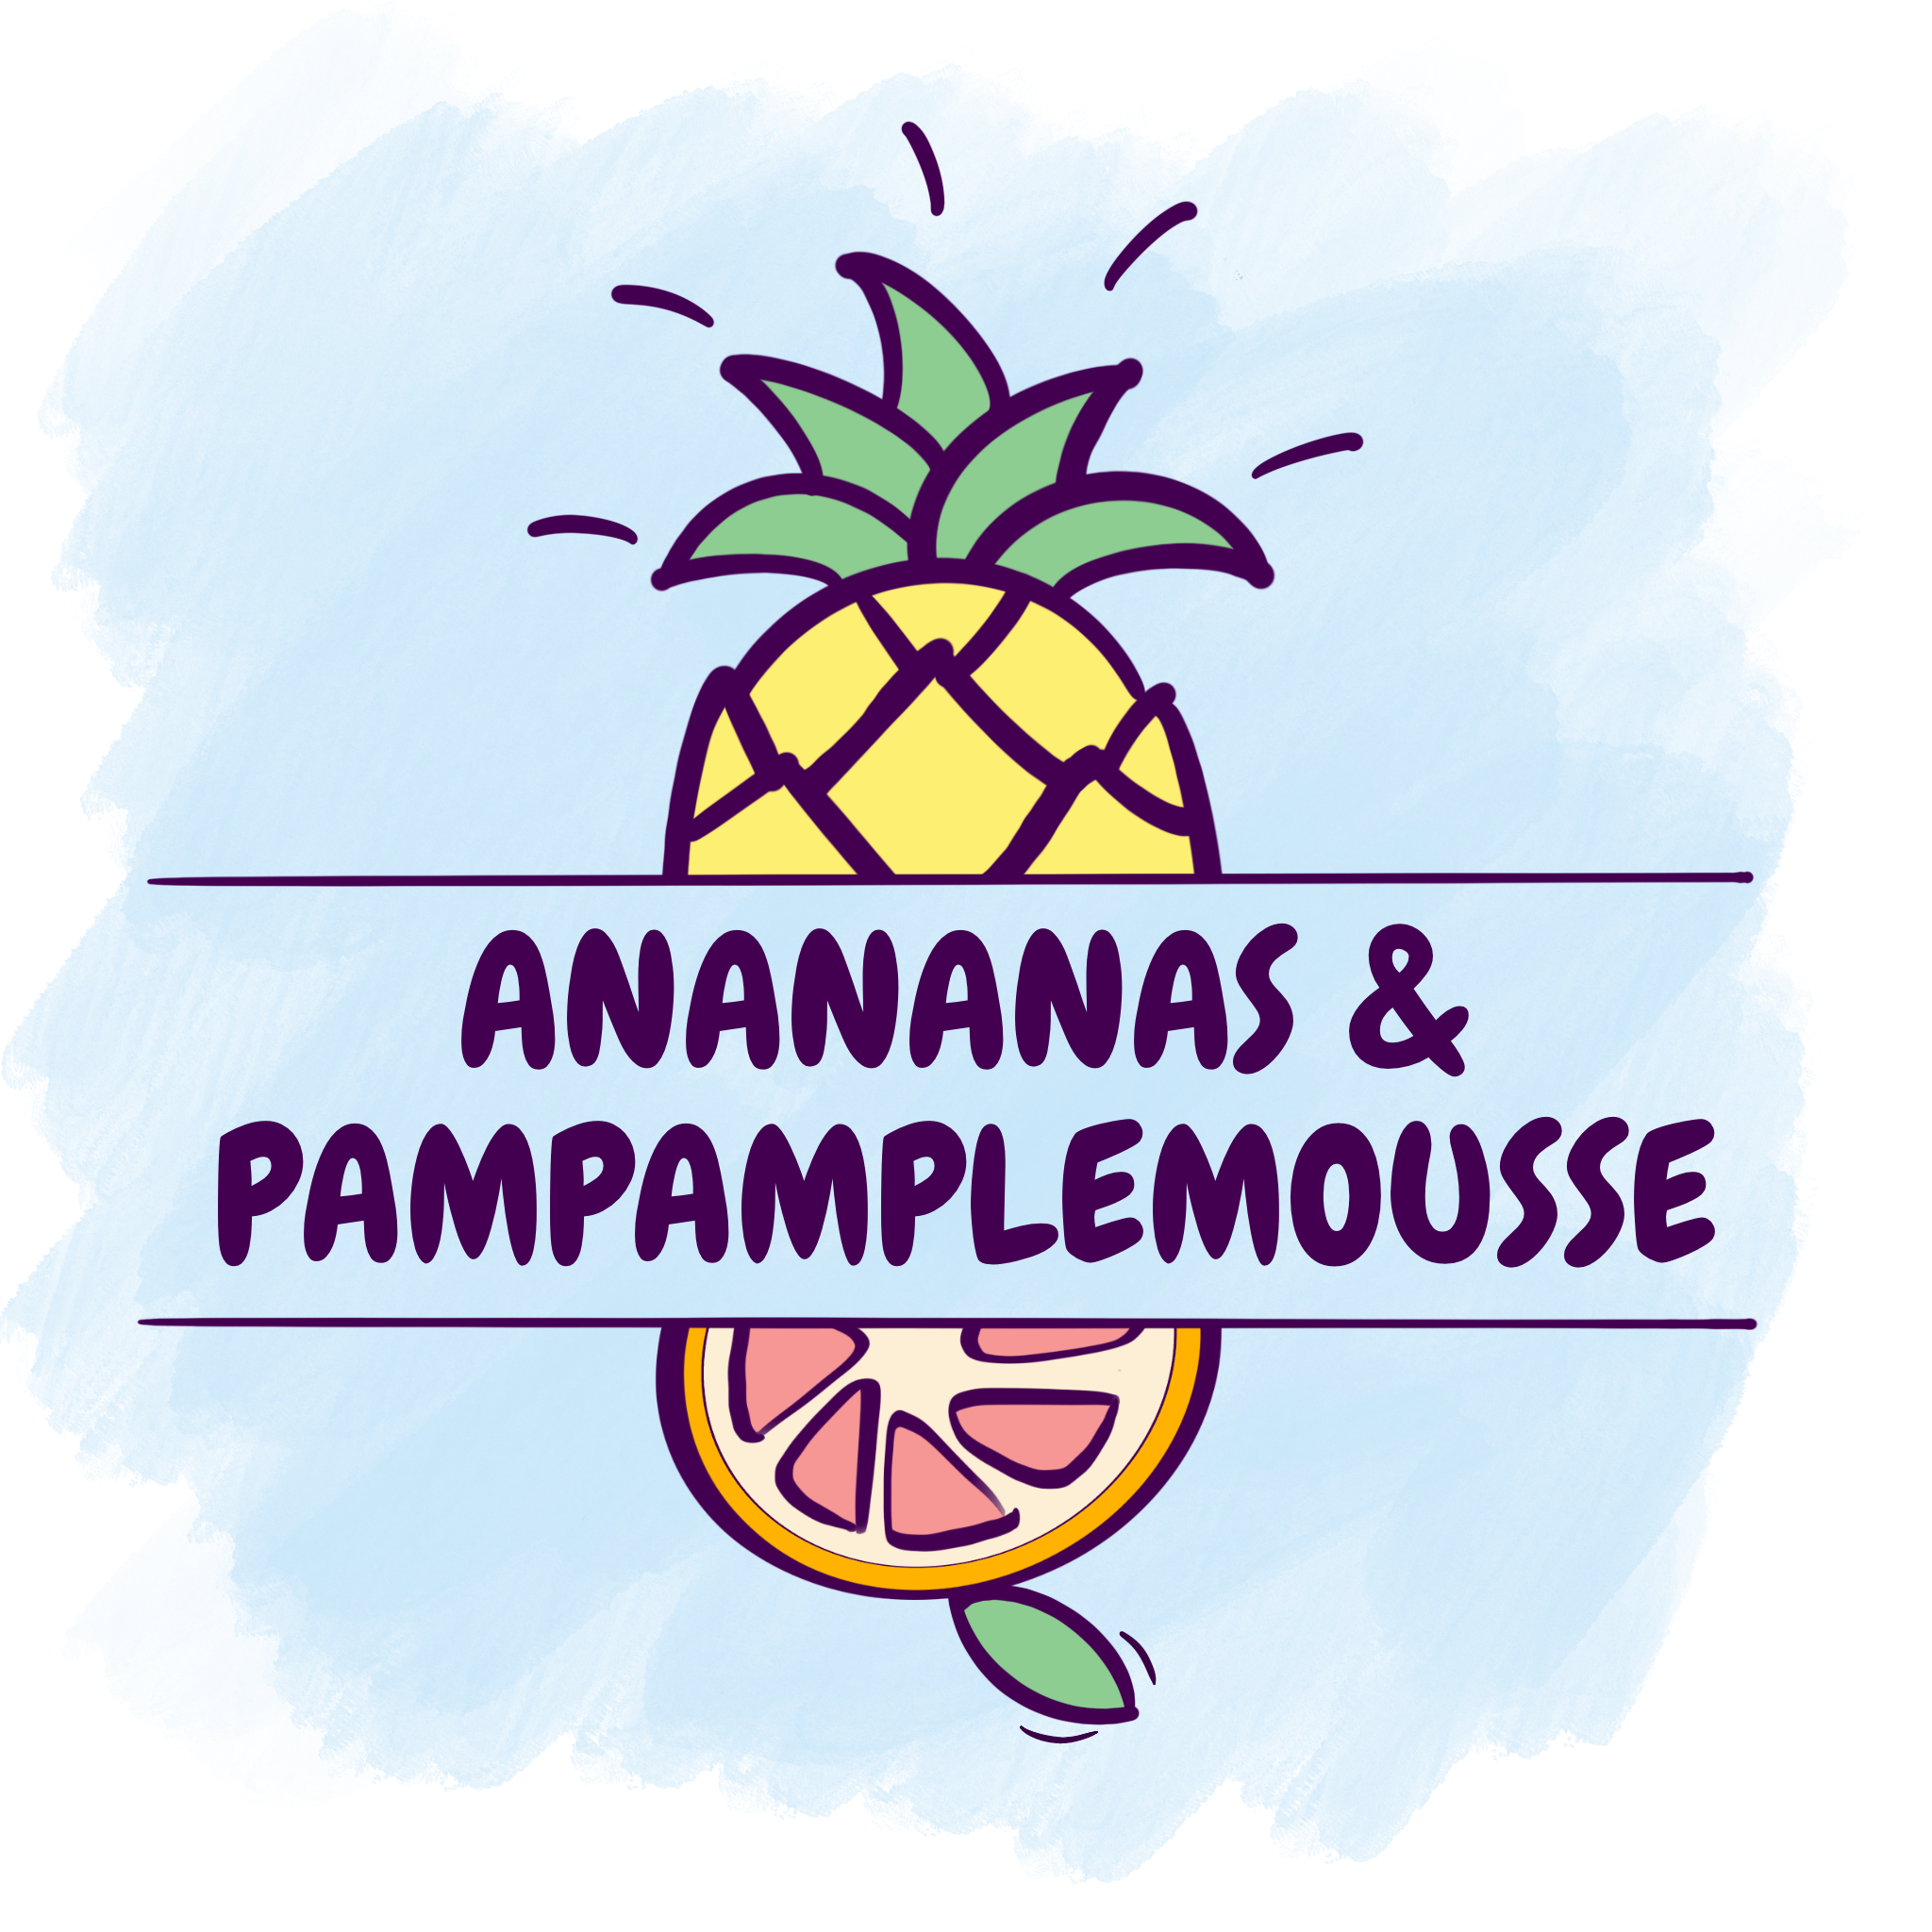 Anananas & Pampamplemousse